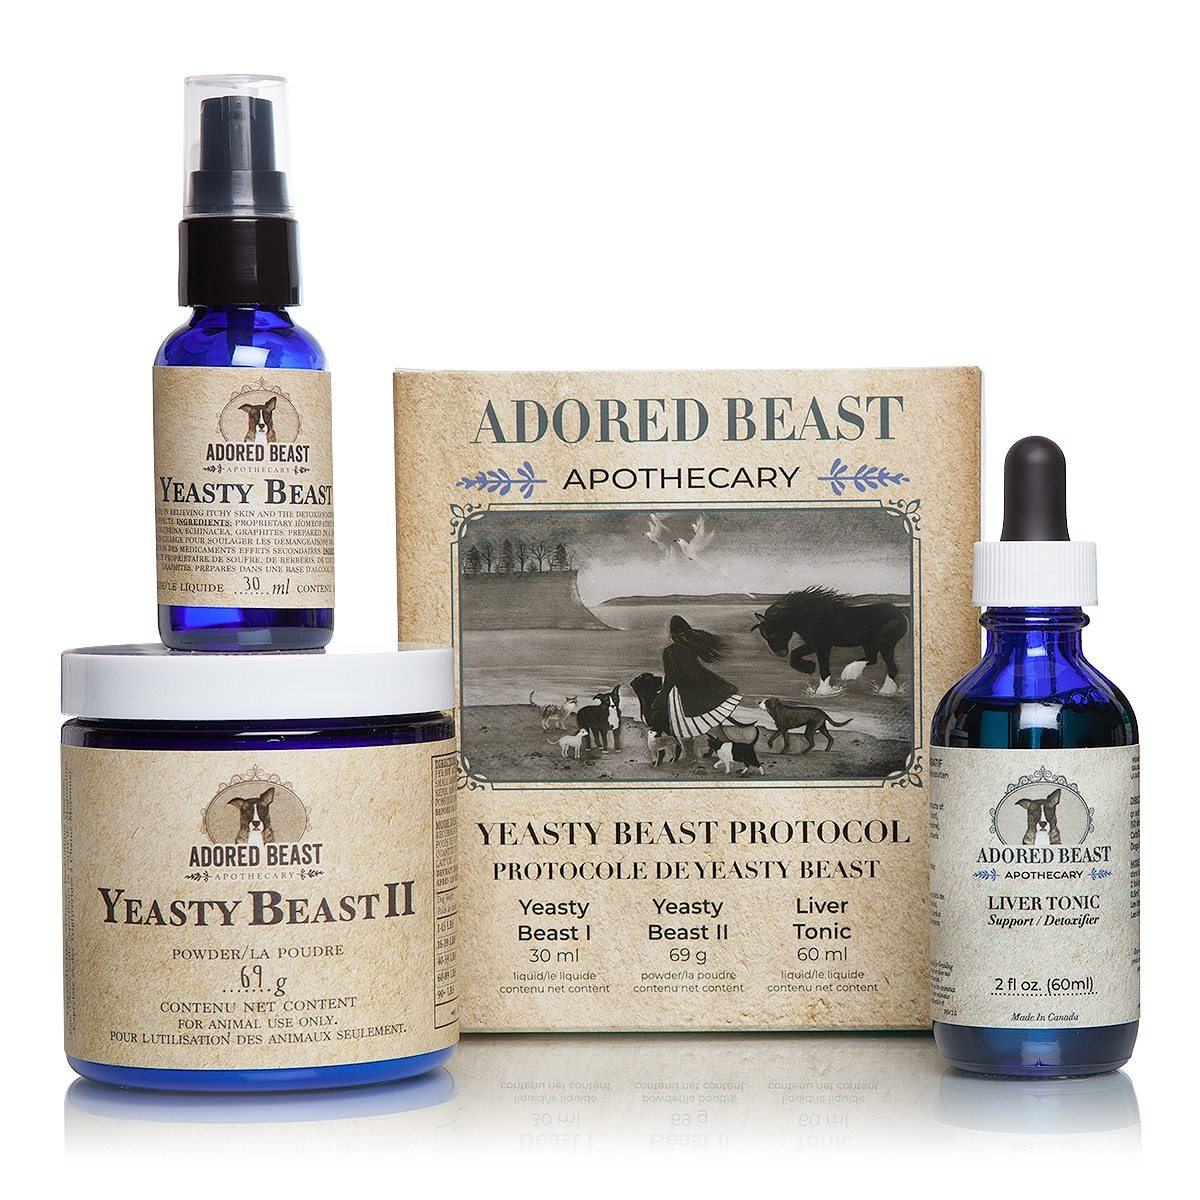 Yeasty Beast Protocol - 3 product kit - Adored Beast Apothecary